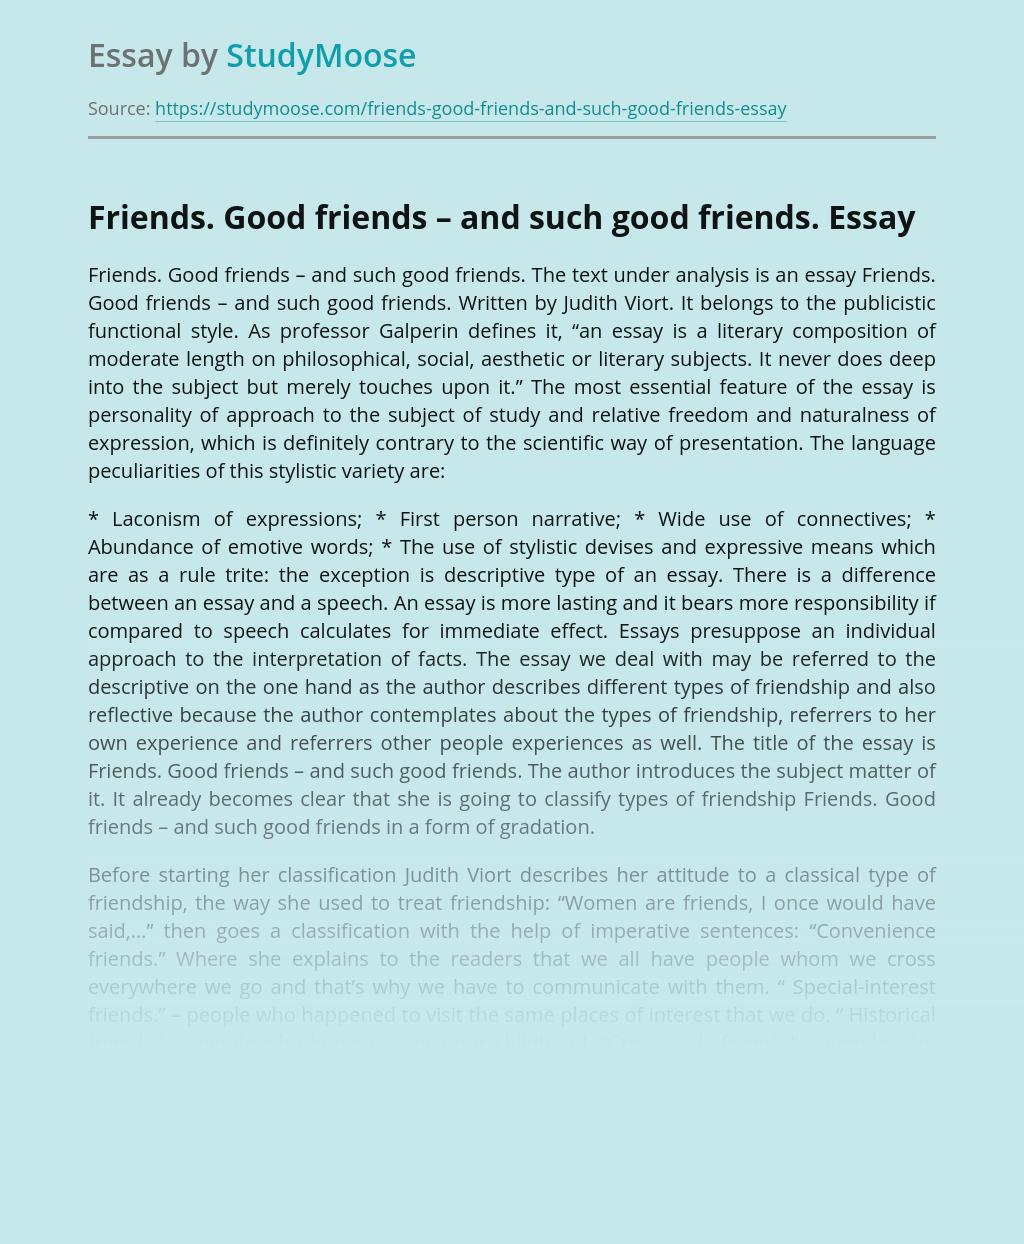 Friends. Good friends – and such good friends.